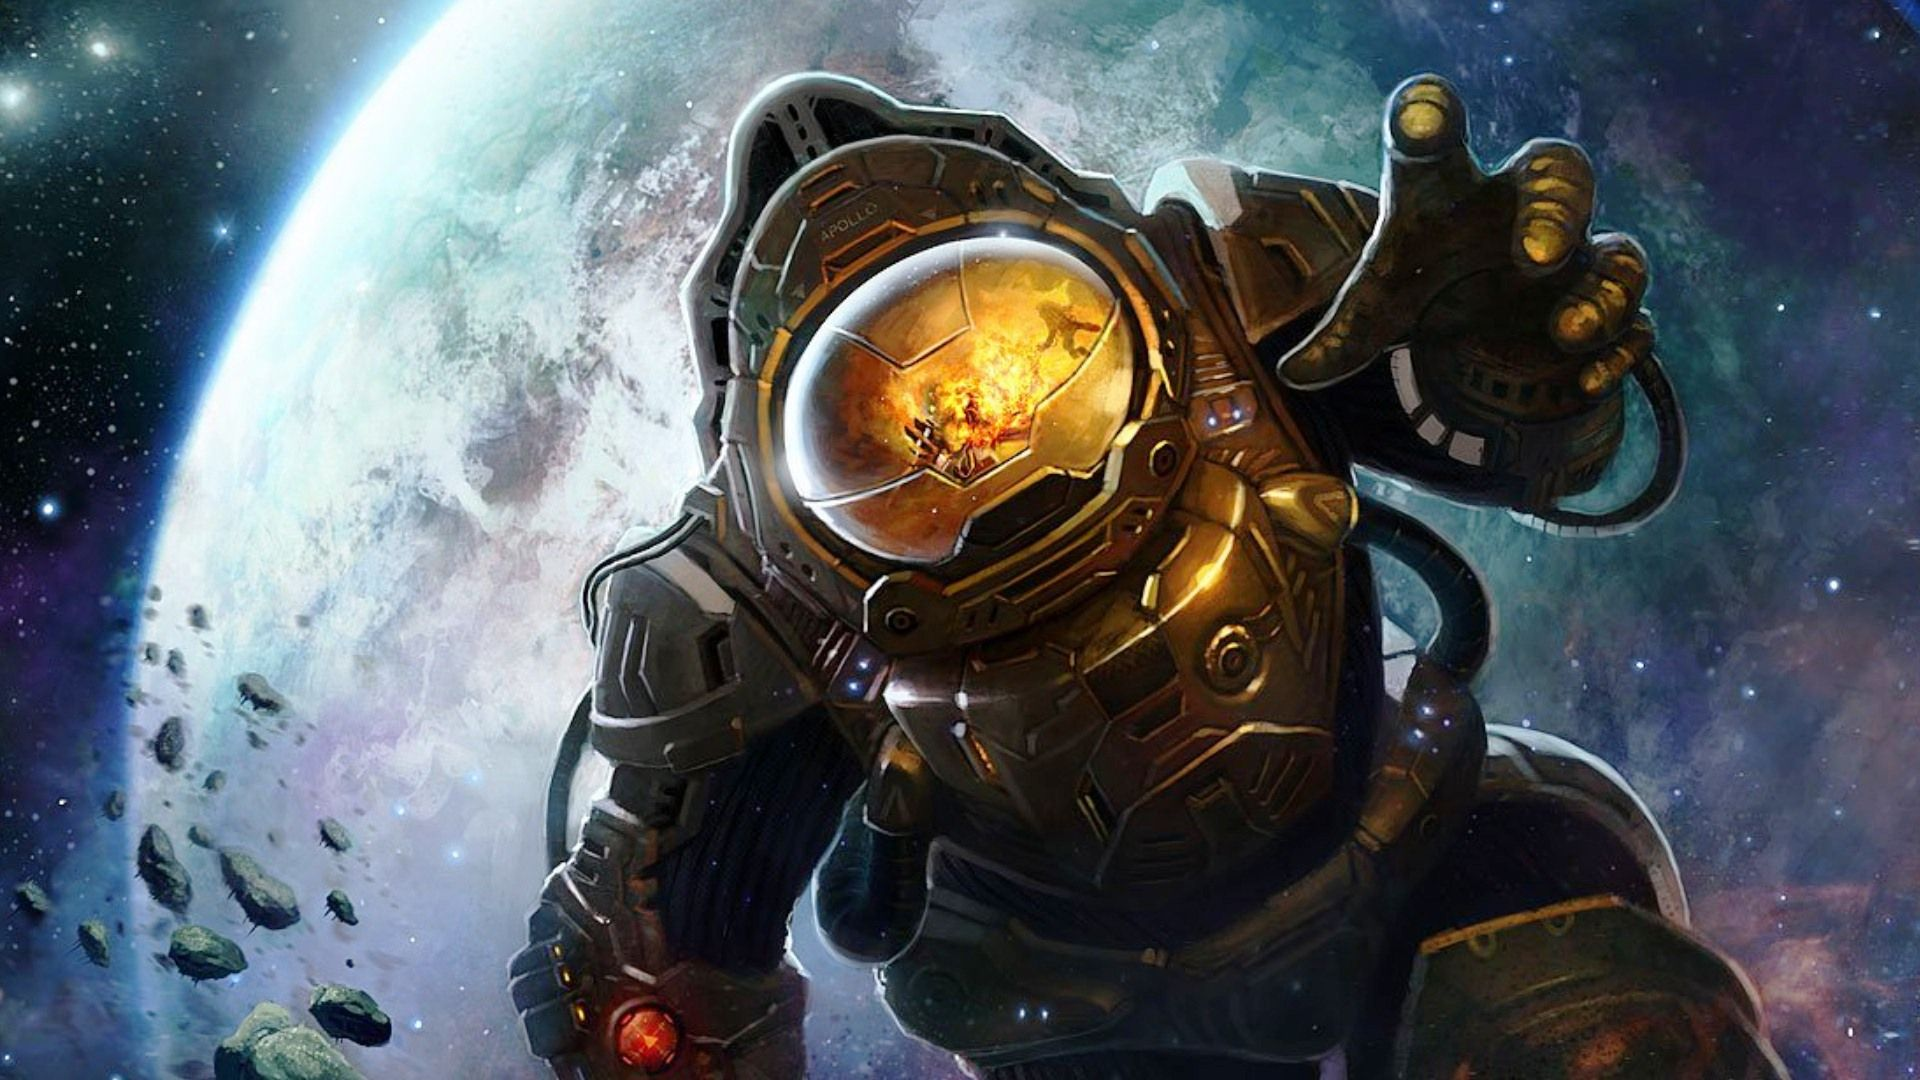 Pin by digital art magazine on Spaceman | Astronaut ...